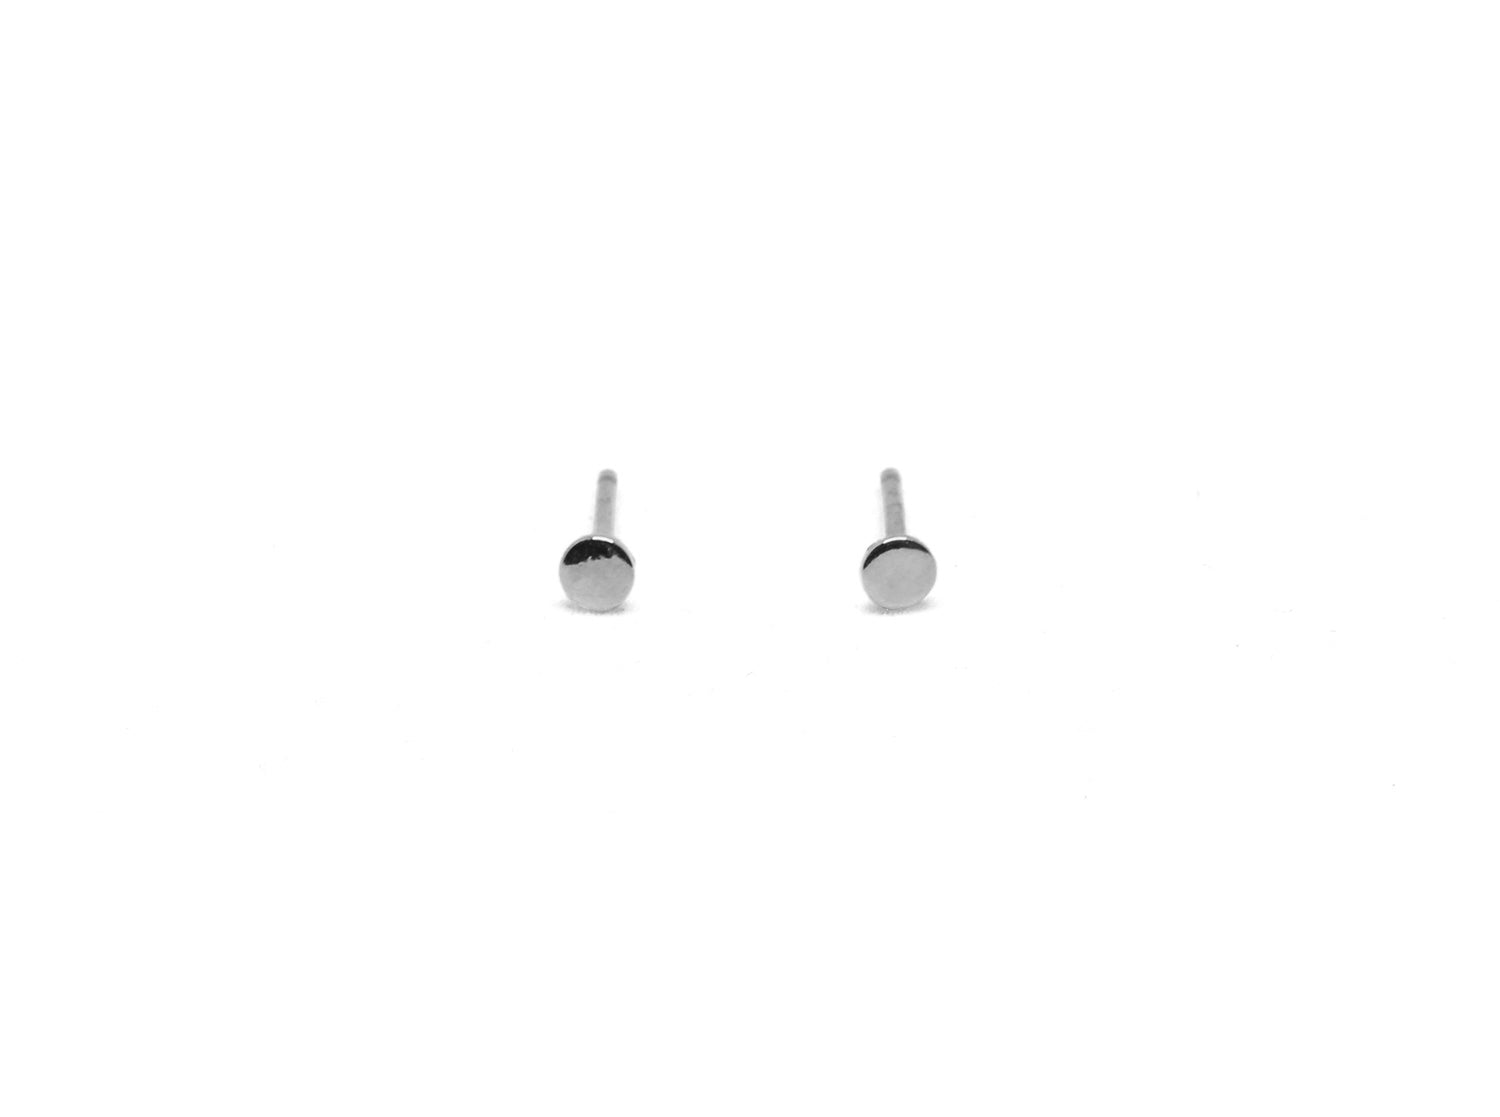 llayers jewelry earrings mini moon circle disk silver- boucles d'oreilles petit clou rond geometric lune argent